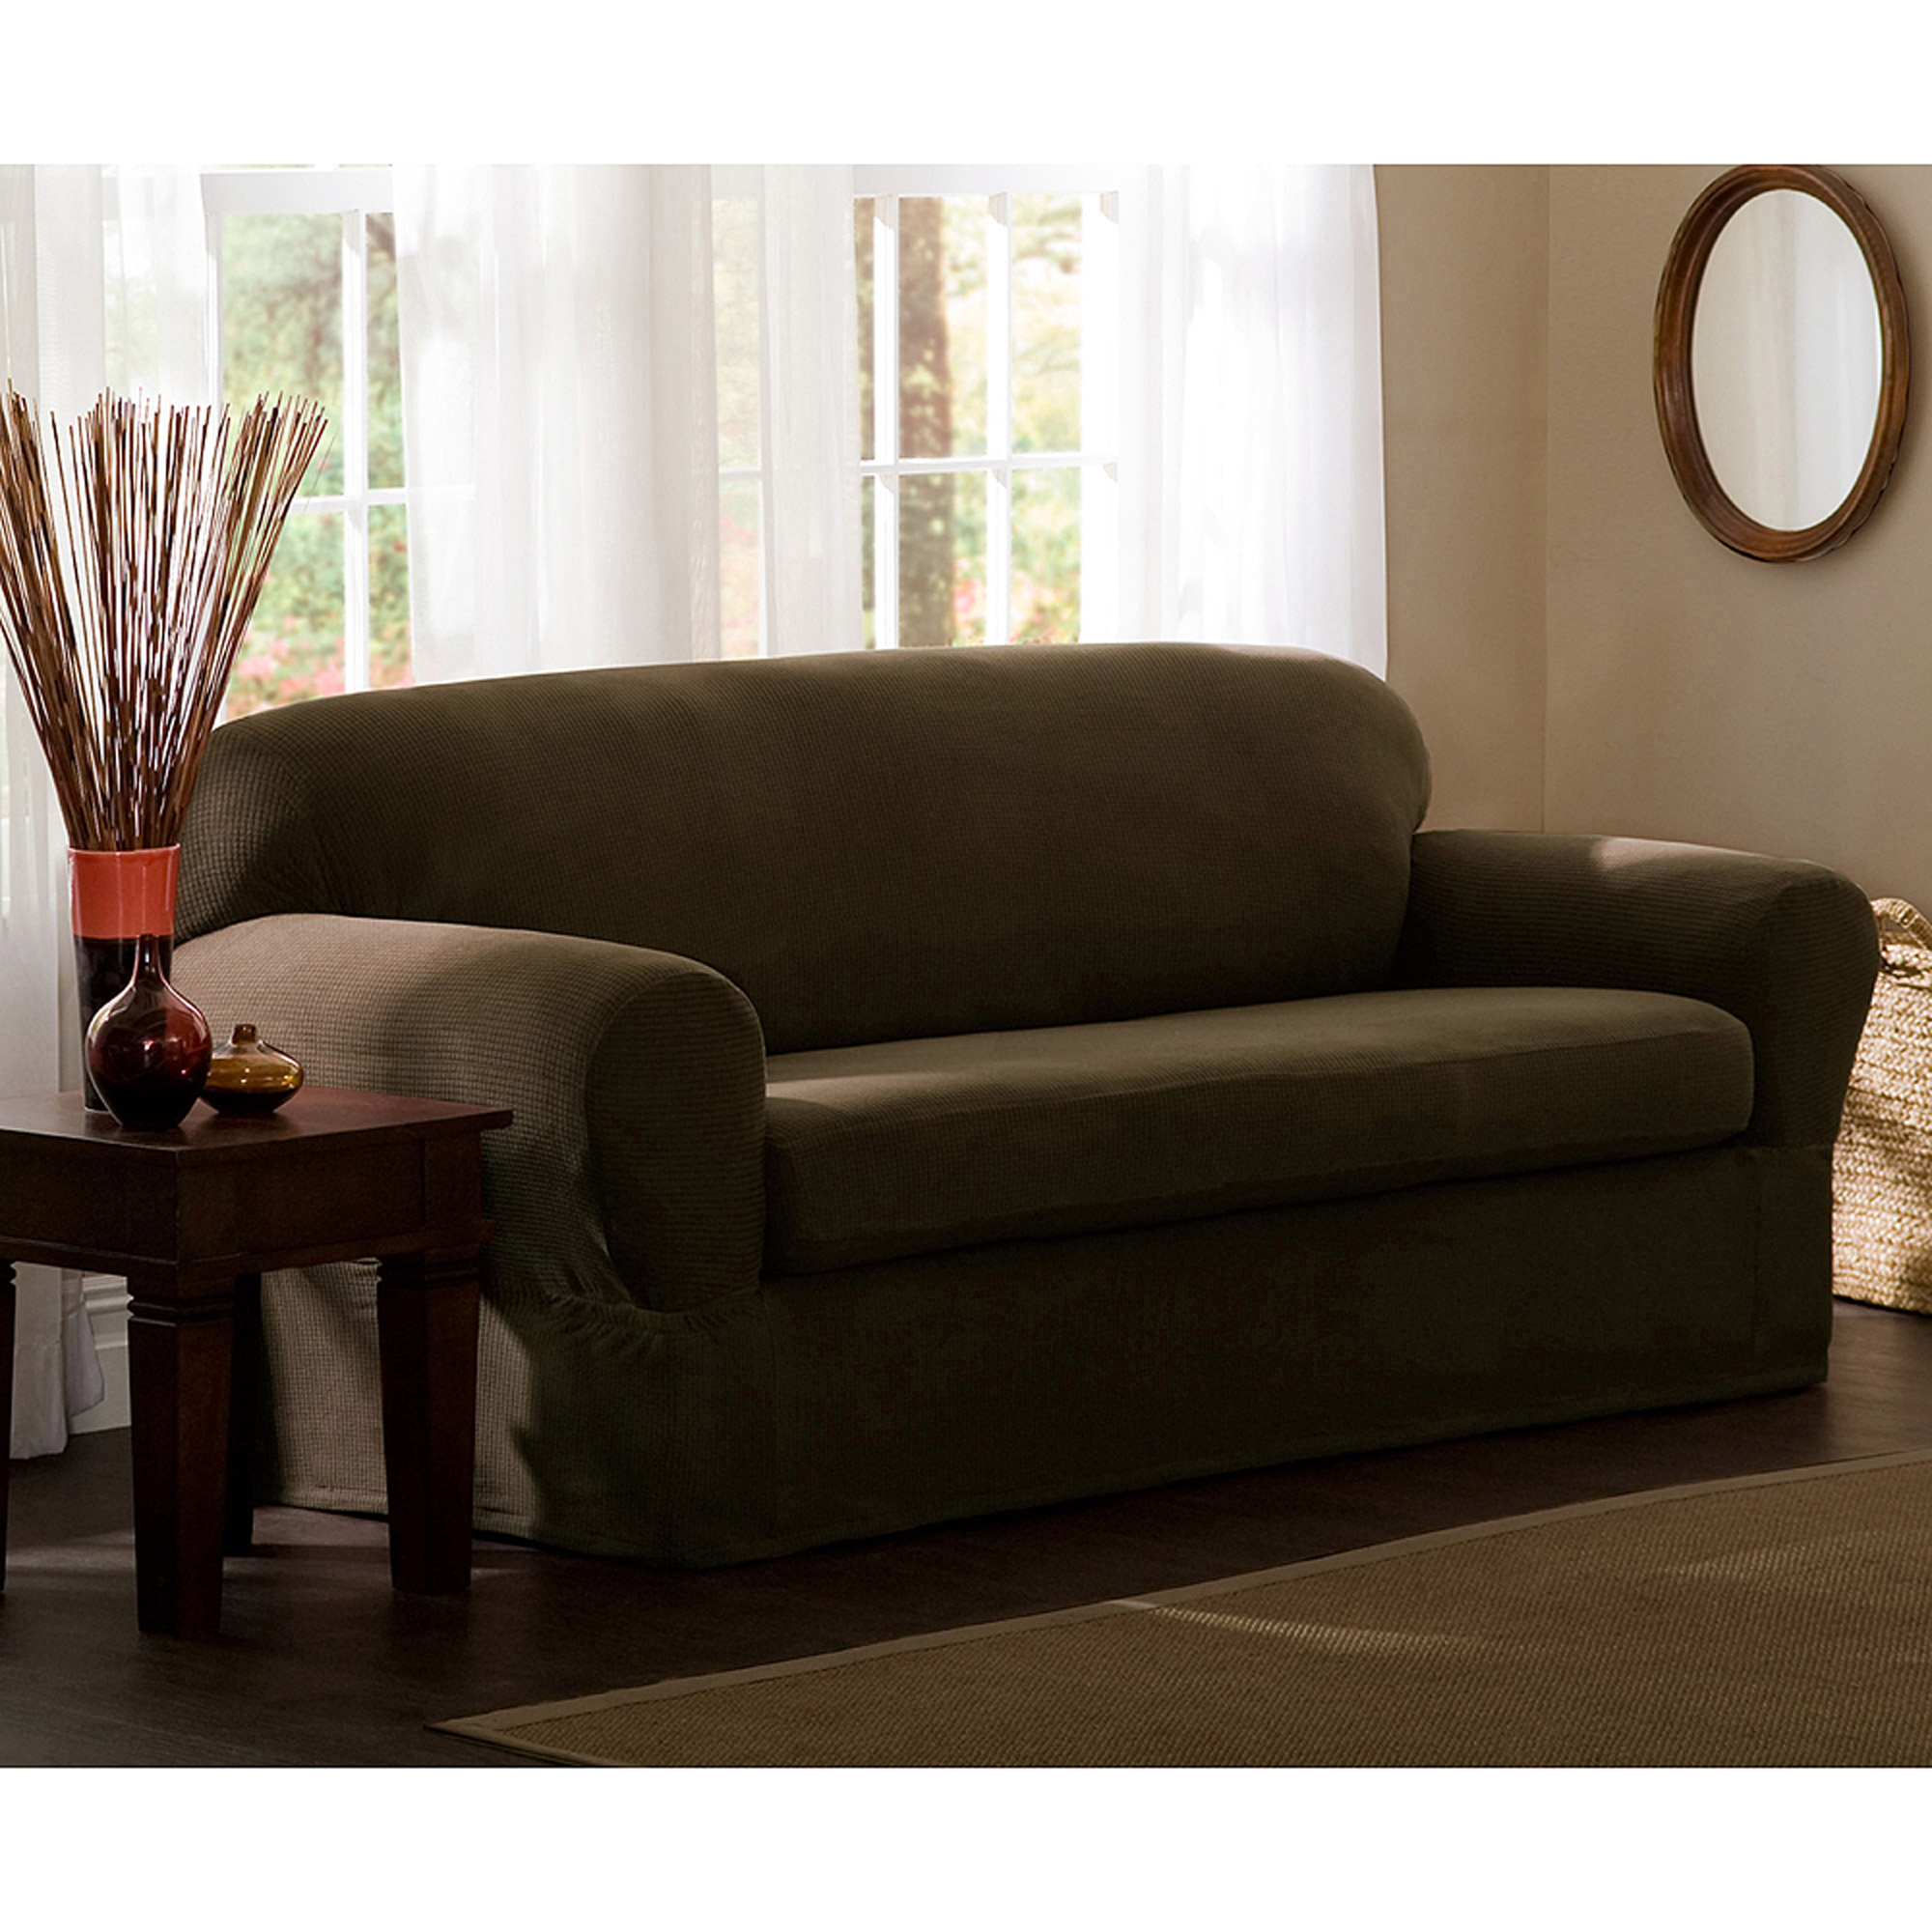 couch cushion covers walmart com